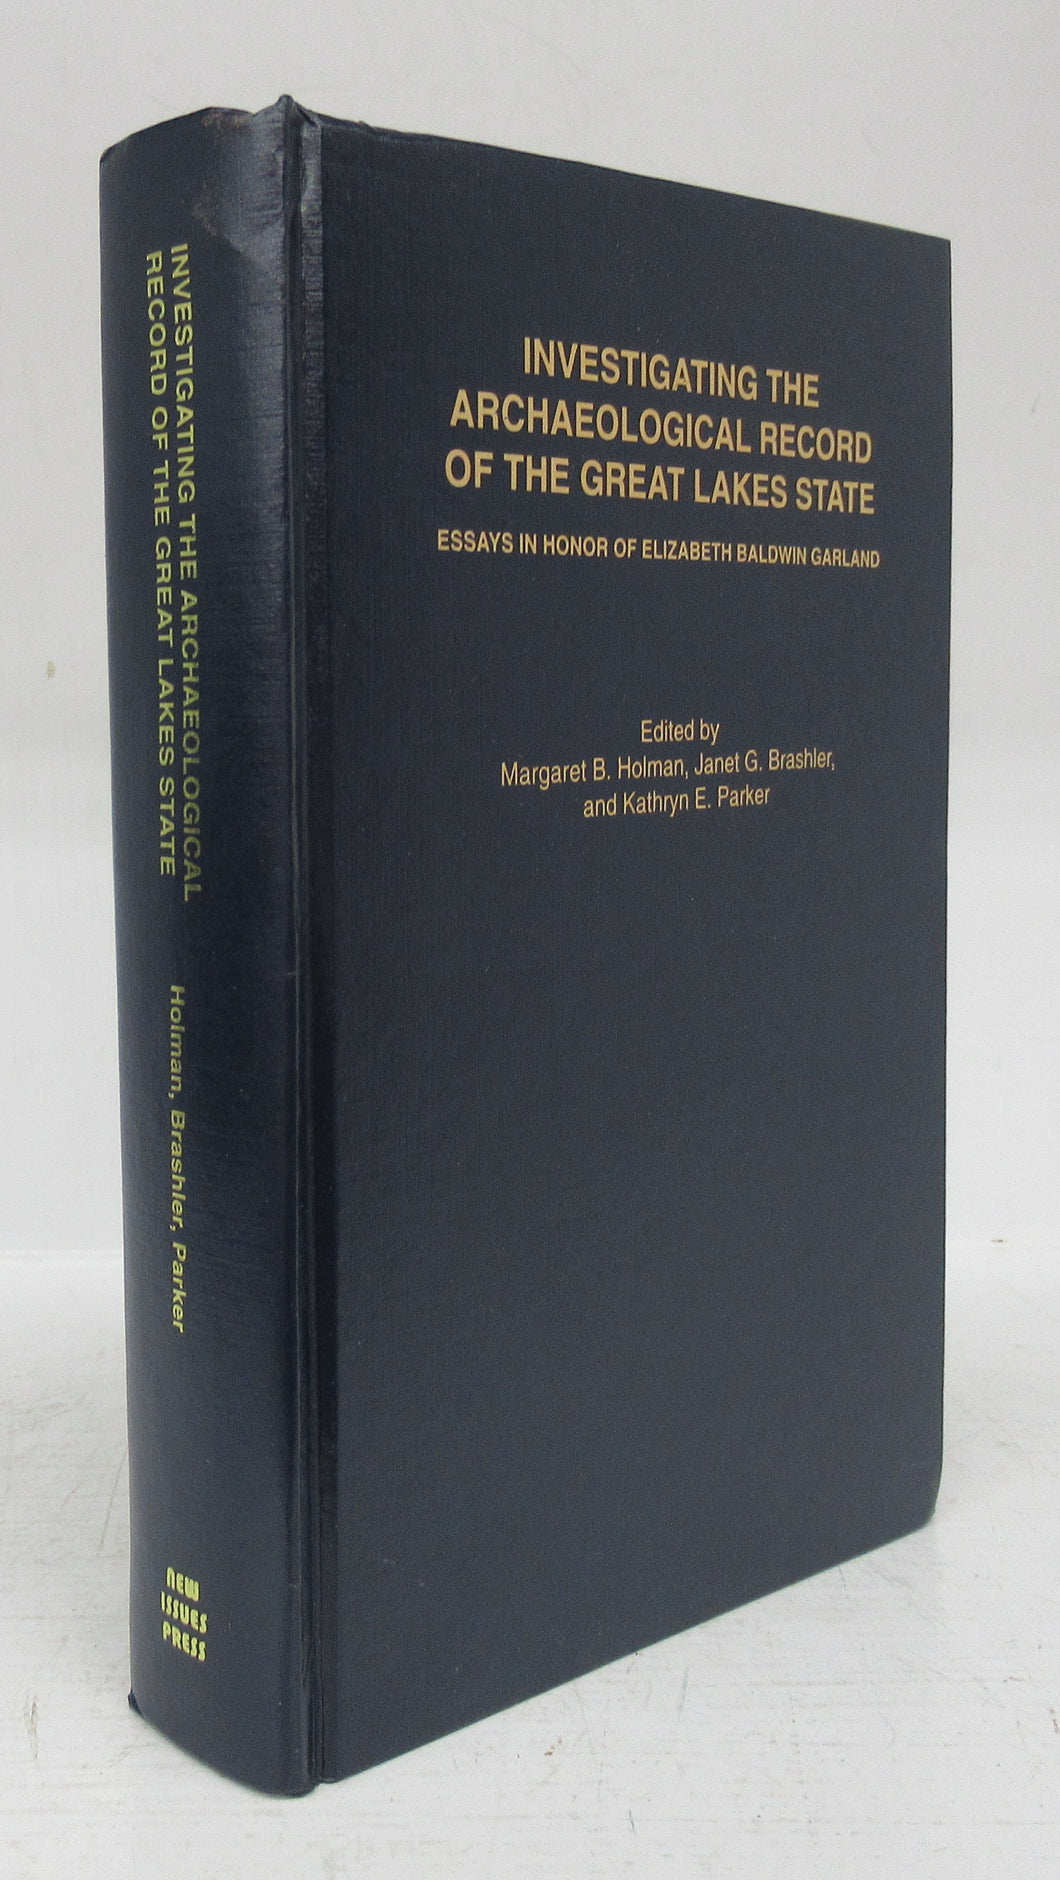 Investigating the Archaeological Record of the Great Lakes State: Essays in Honor of Elizabeth Baldwin Garland